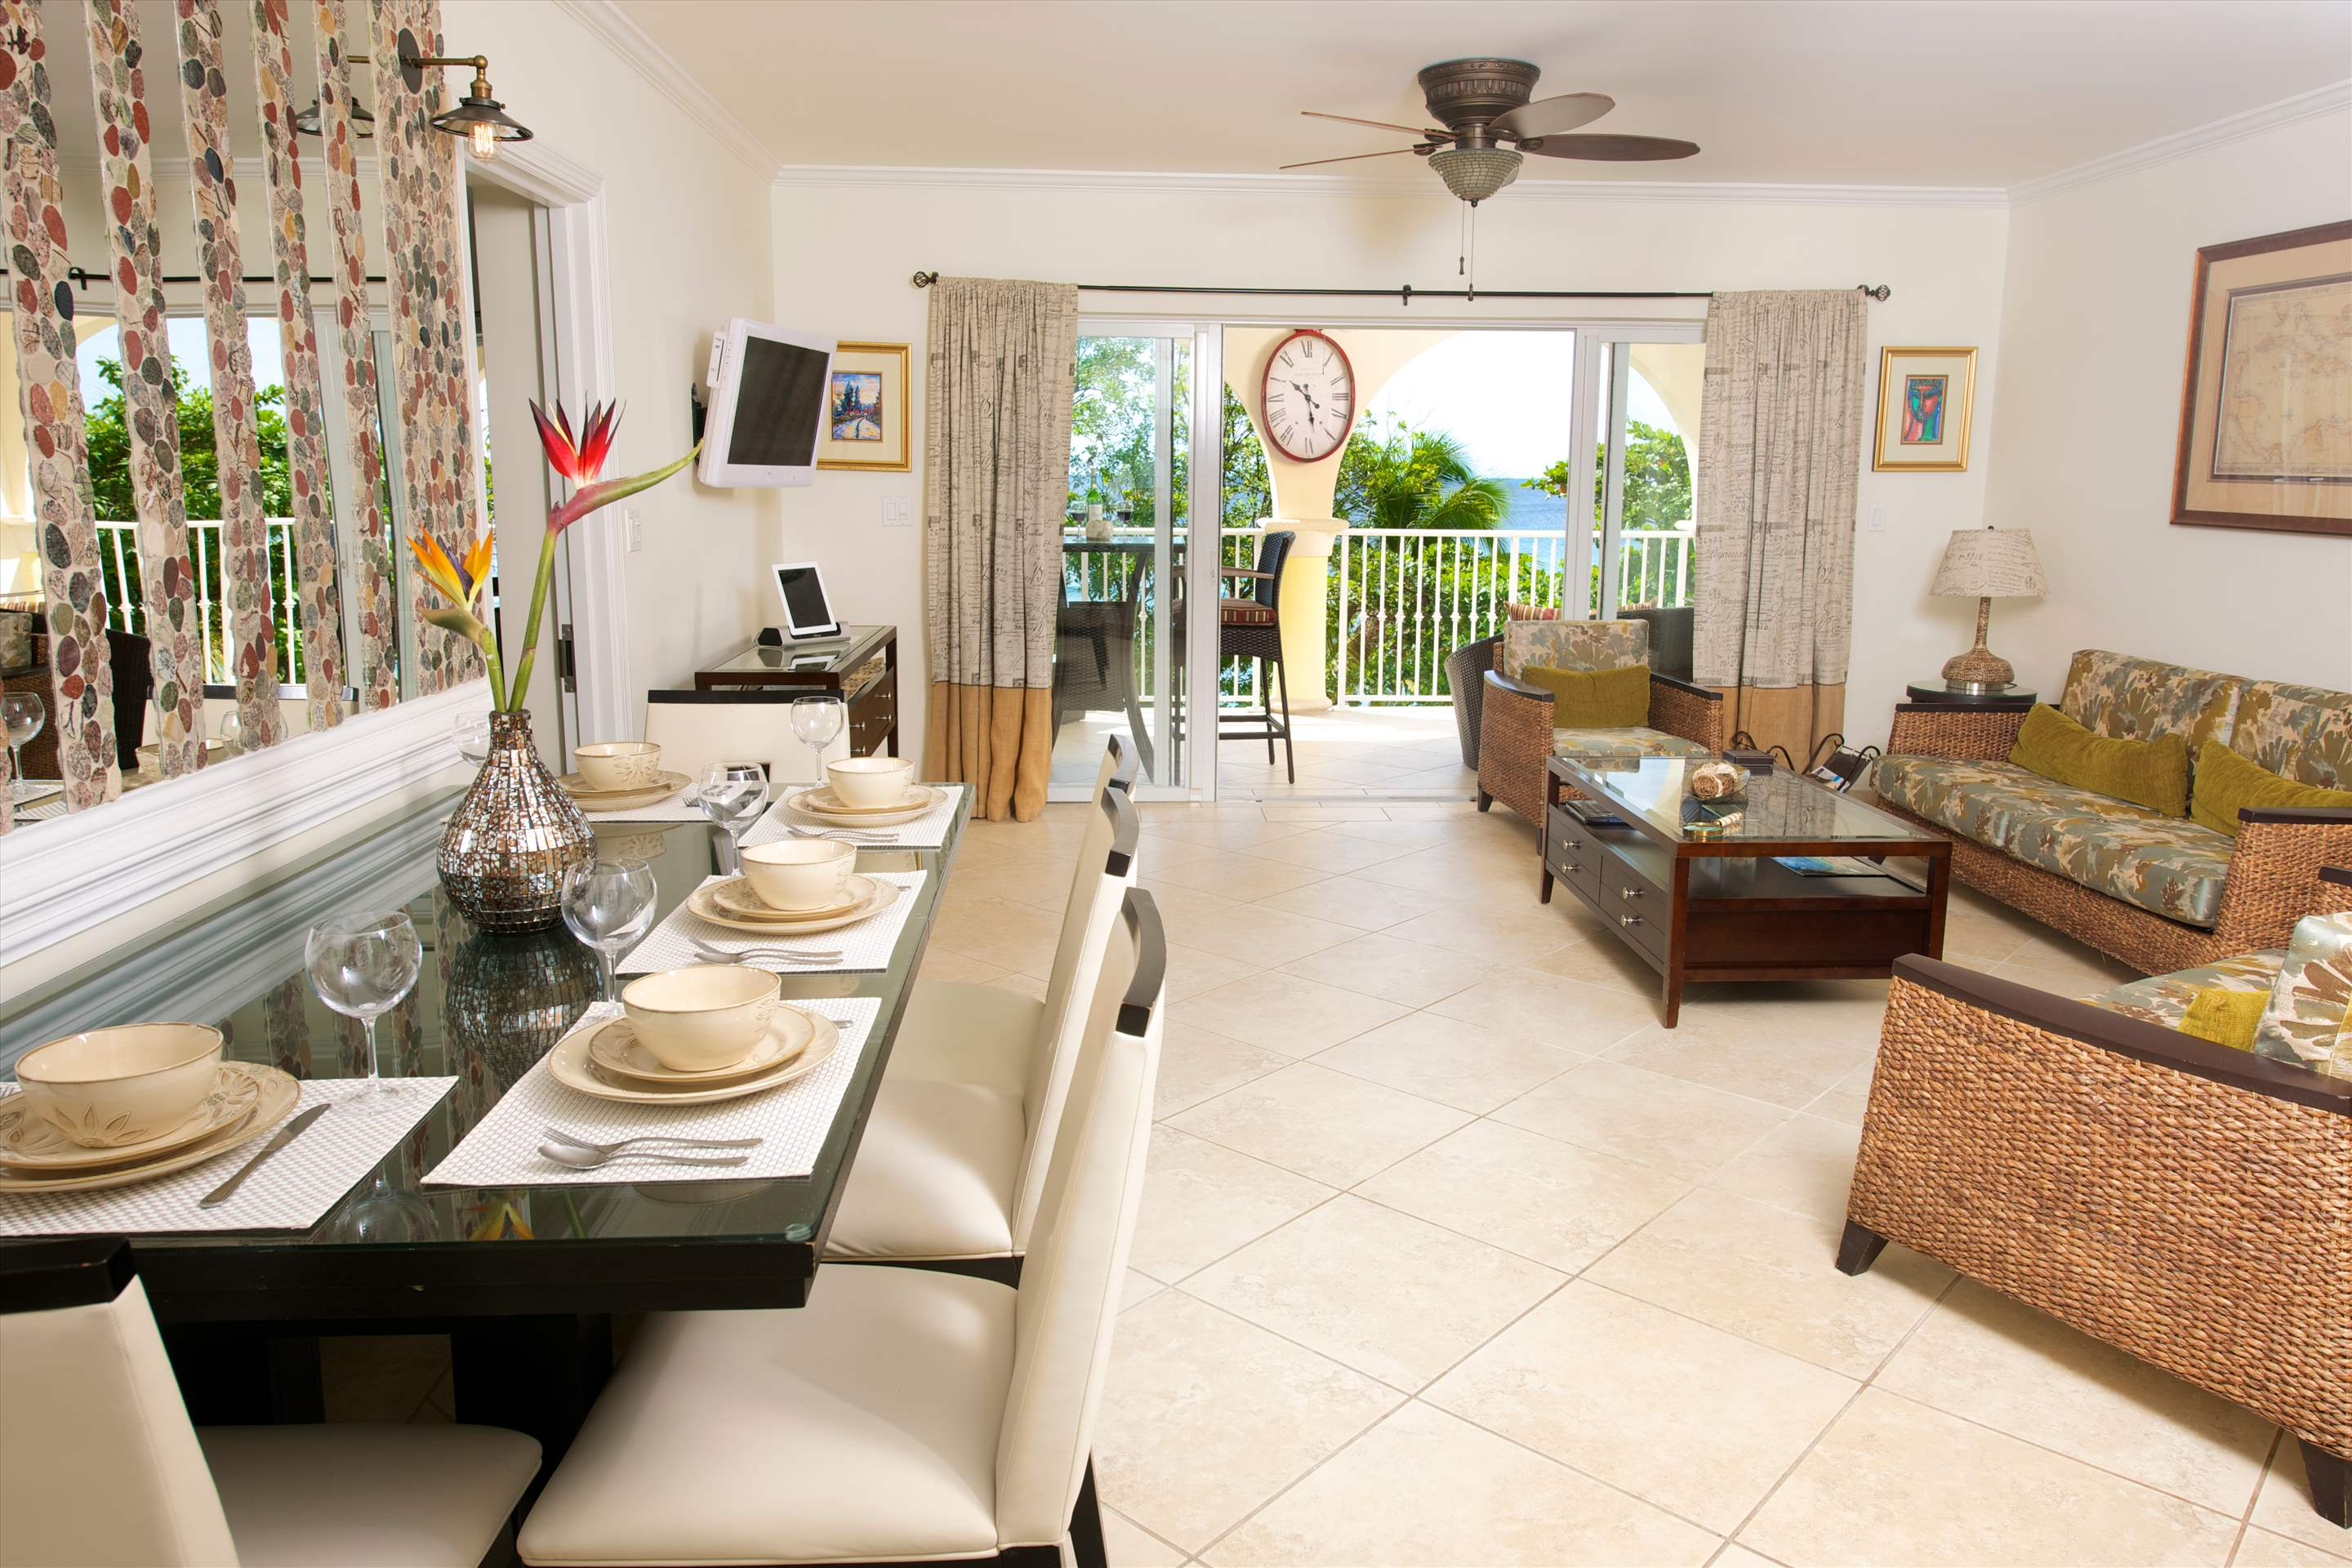 Sapphire Beach 203, 2 bedroom, 3 bedroom apartment in St. Lawrence Gap & South Coast, Barbados Photo #5